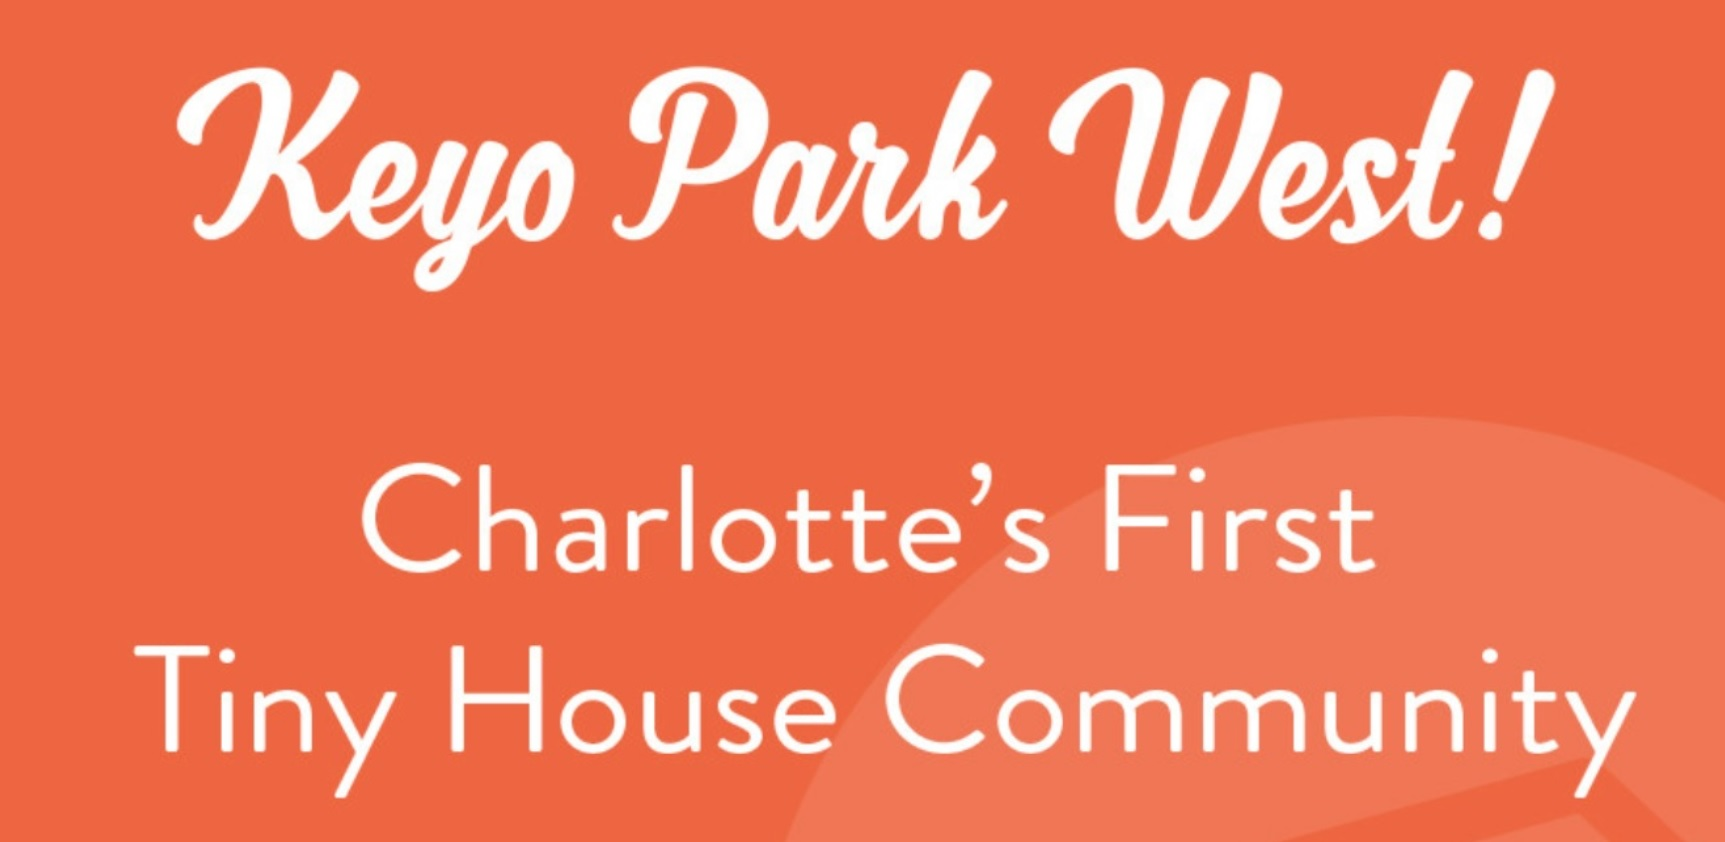 Charlotte's First Tiny House Community: Key Park West